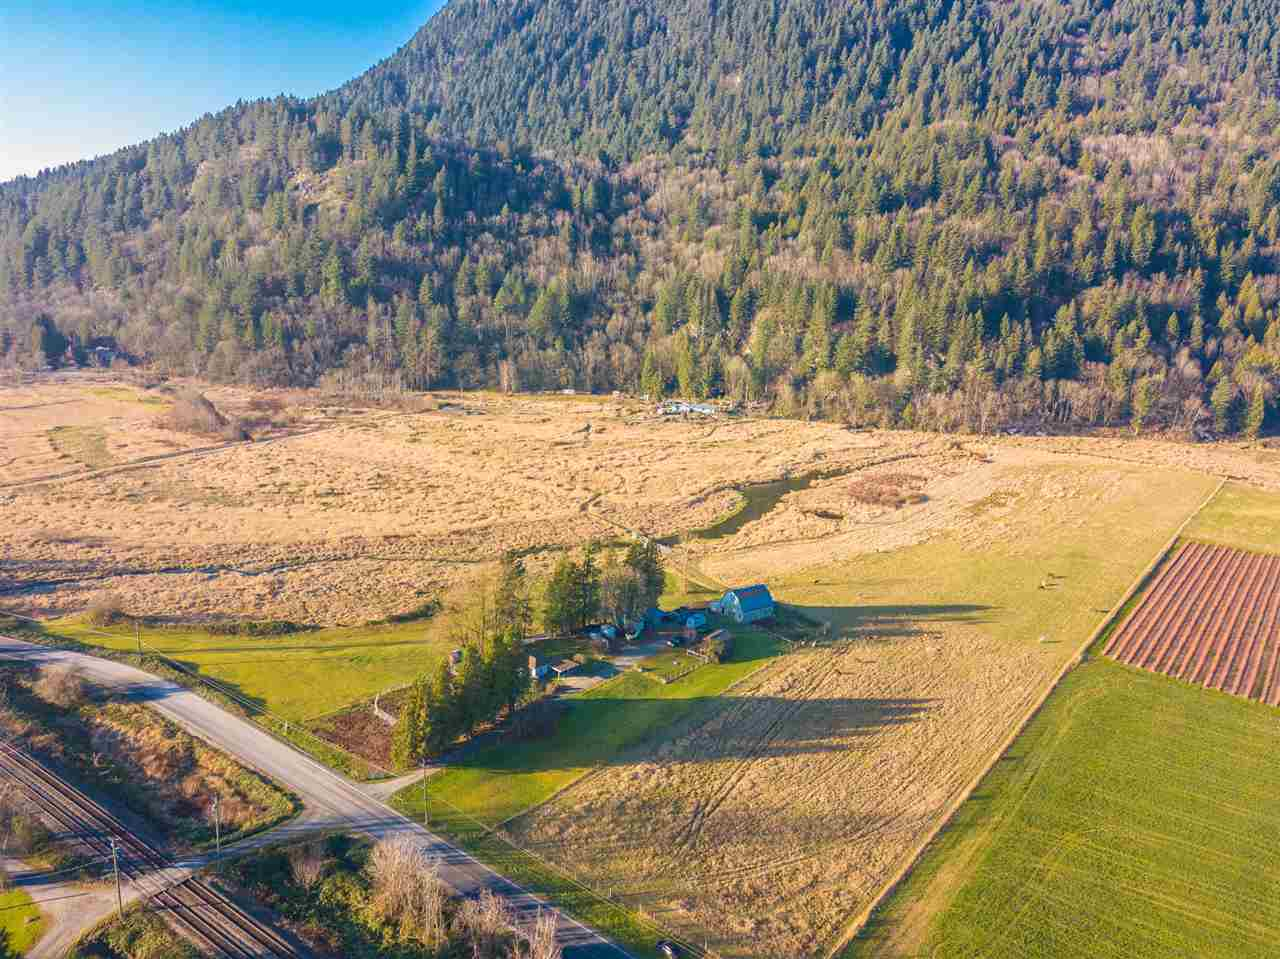 Excellent opportunity to build your dream home and farm on this nearly 48 acre parcel offering the valley's best soil and less than 10 minutes to town make this a real one of a kind find. Property to viewed by appointment only. Call today for further details